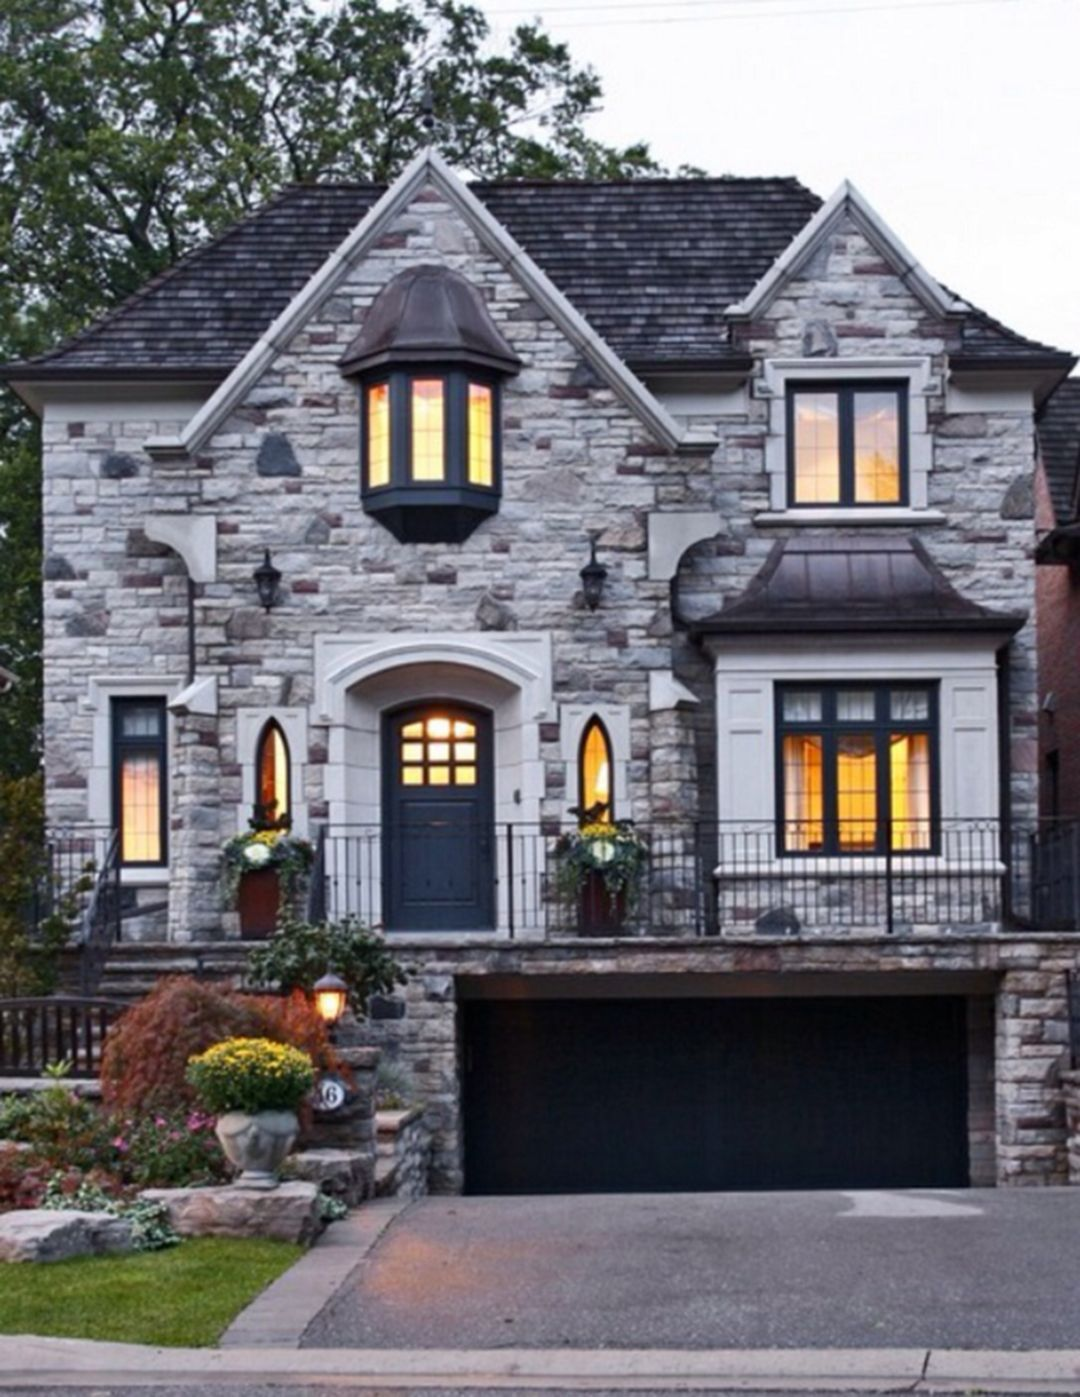 25 Beautiful Stone House Design Ideas On A Budget House Designs Exterior House Exterior Gray House Exterior